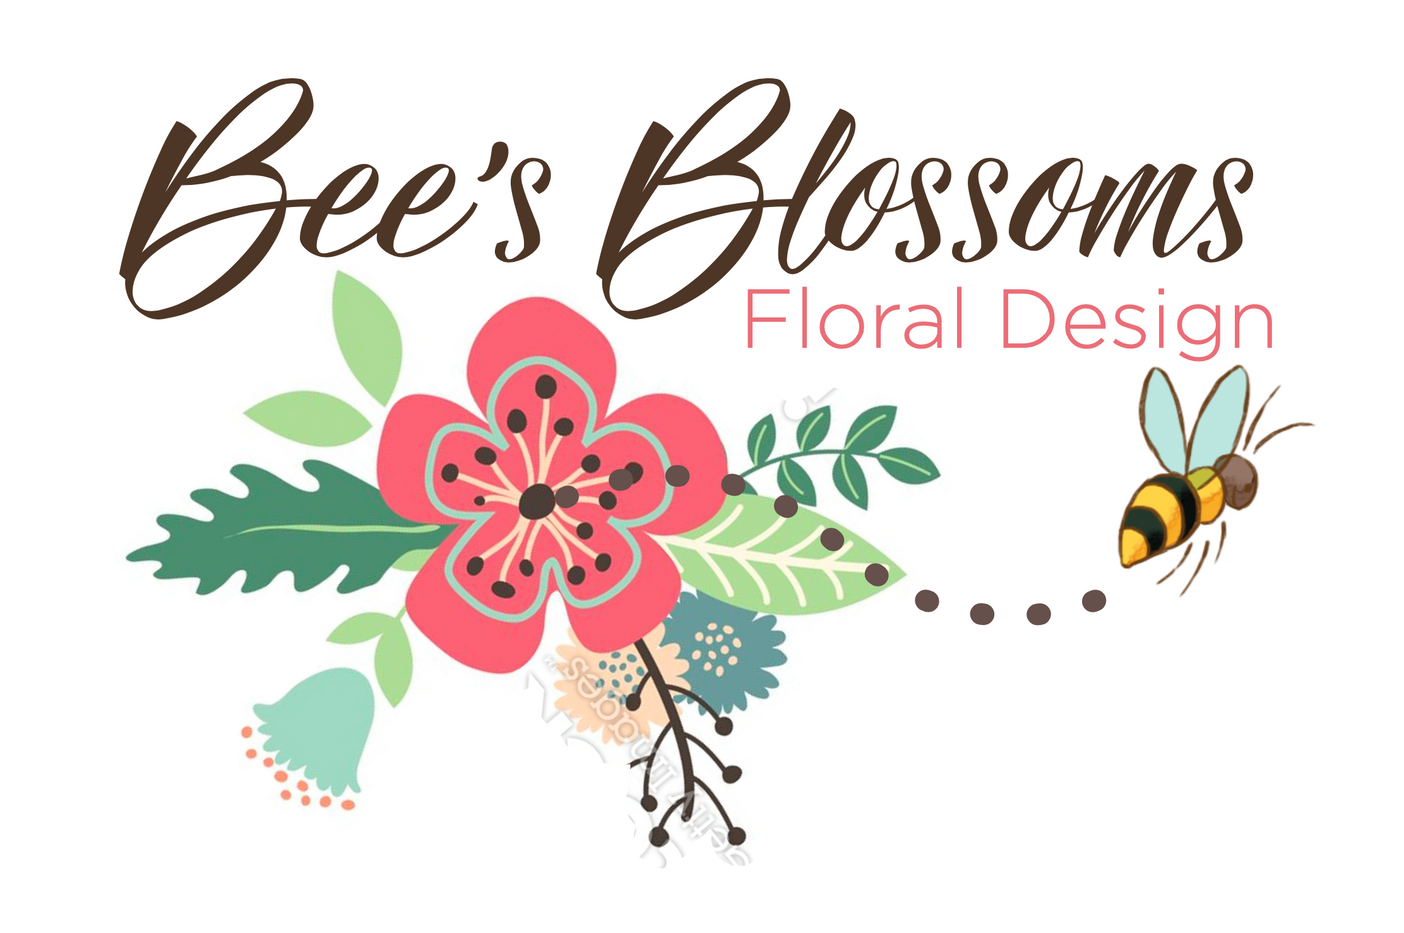 Custom logo design of bouquet of flowers and a bee made for Bee's Blossoms Floral Design